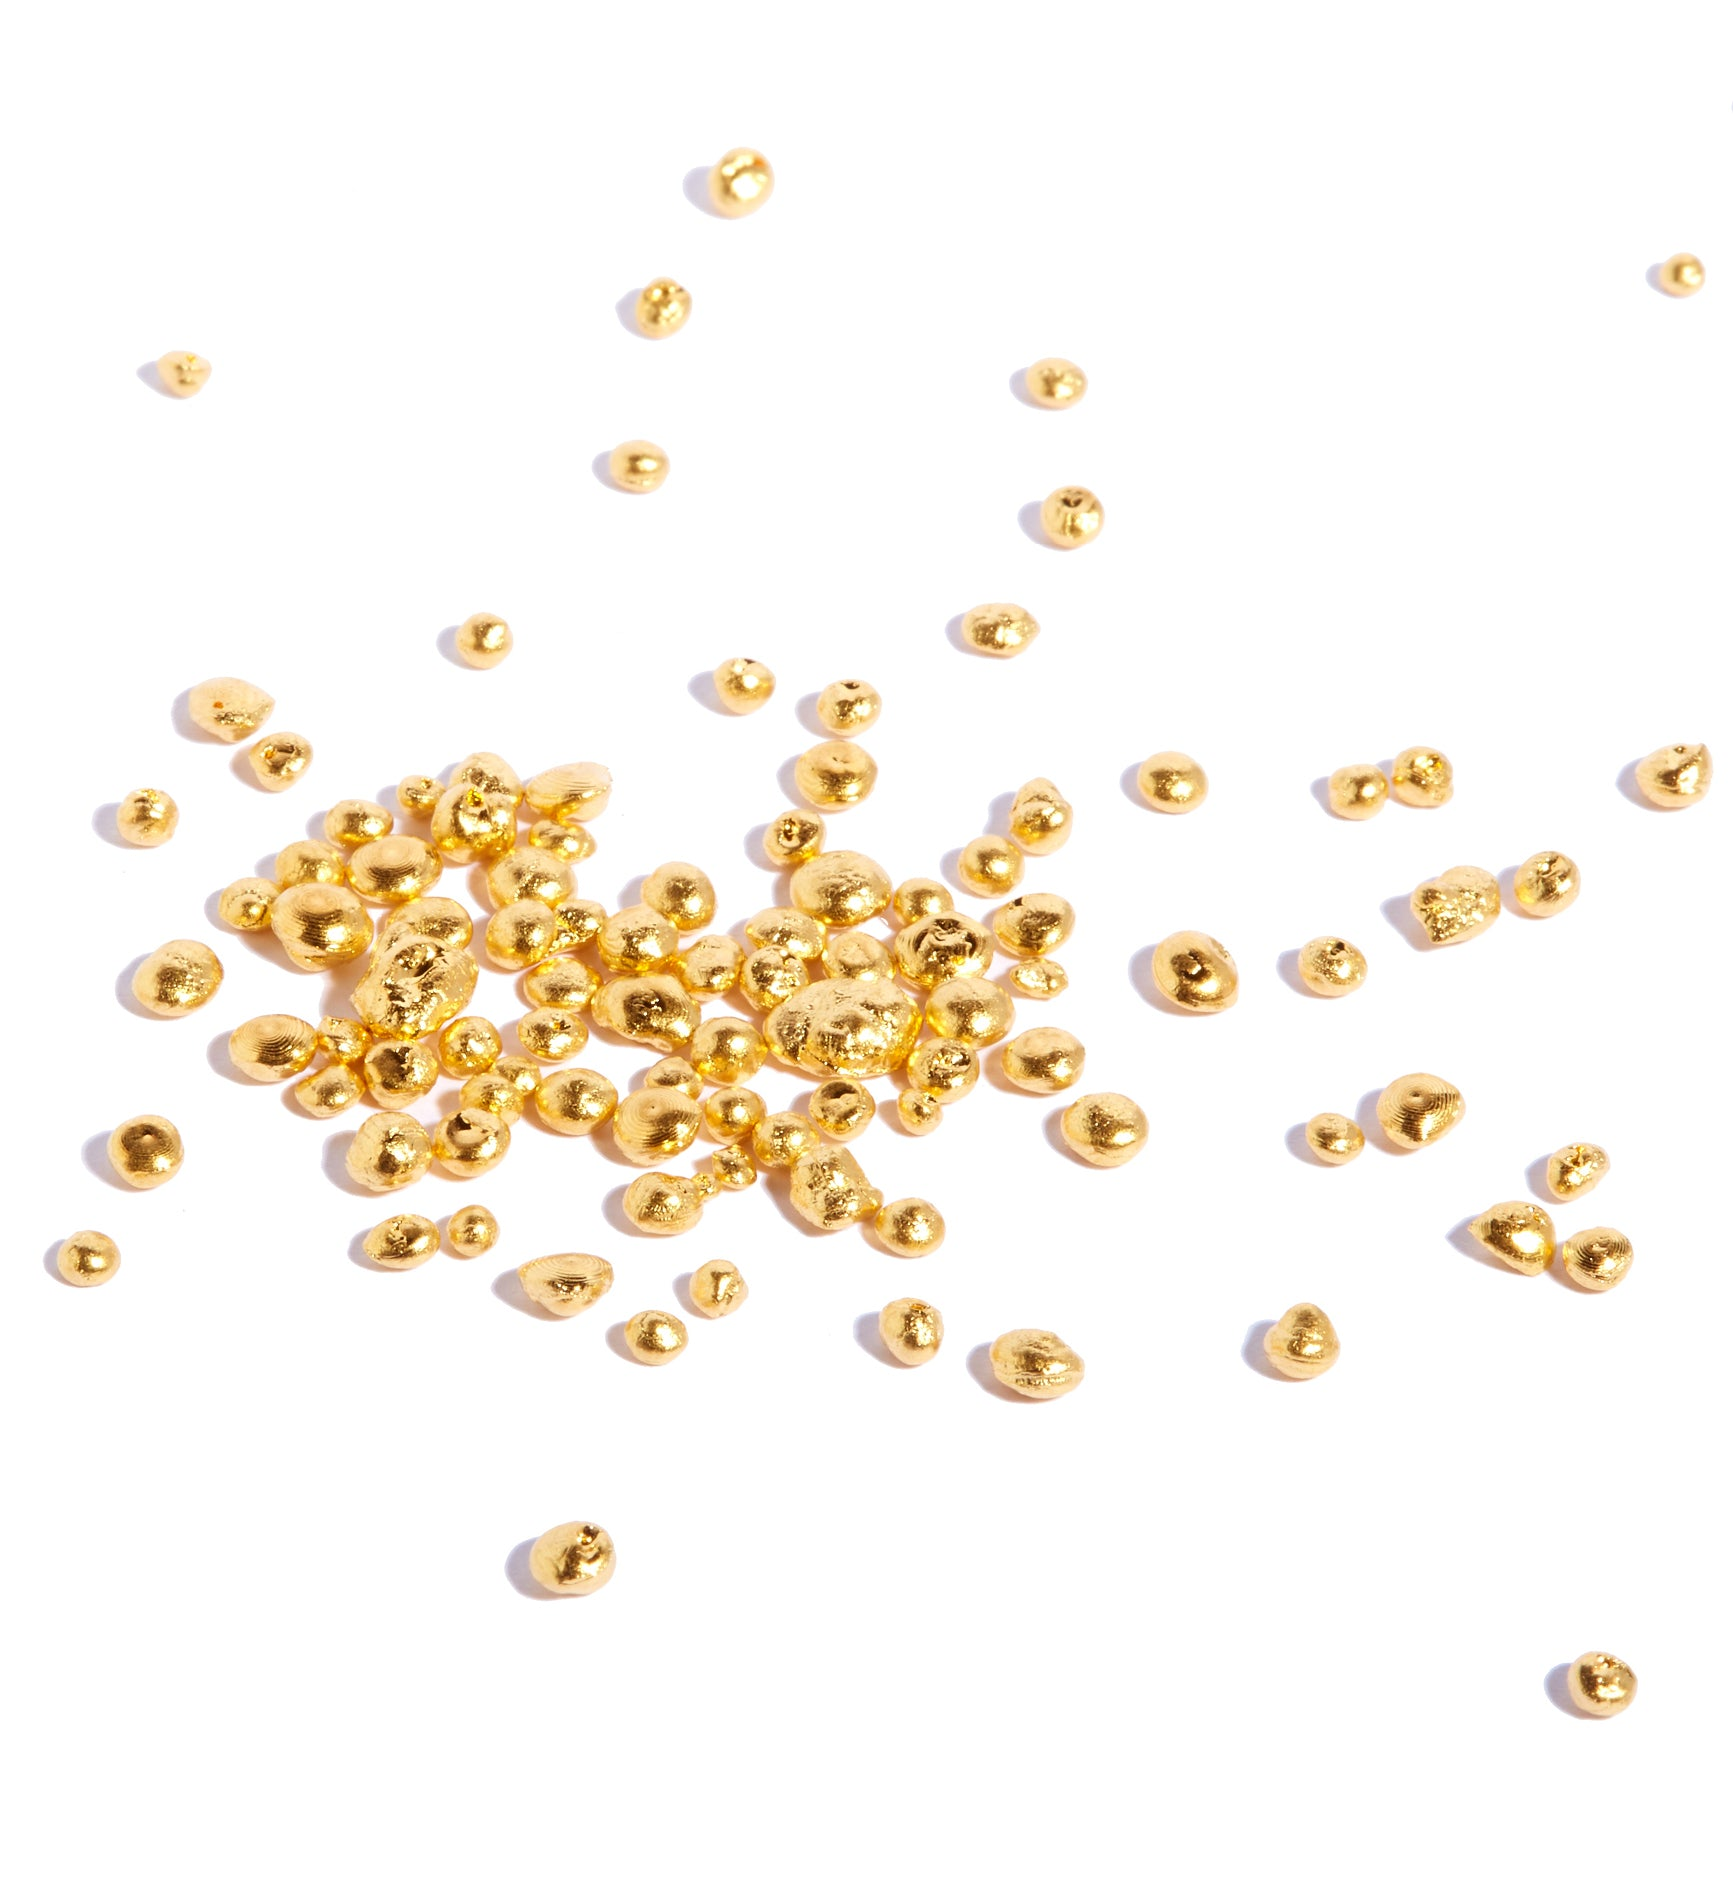 https://cdn.shopify.com/s/files/1/0571/9261/t/15/assets/gold%20granules-1509671744650.jpg?14603574392560871977